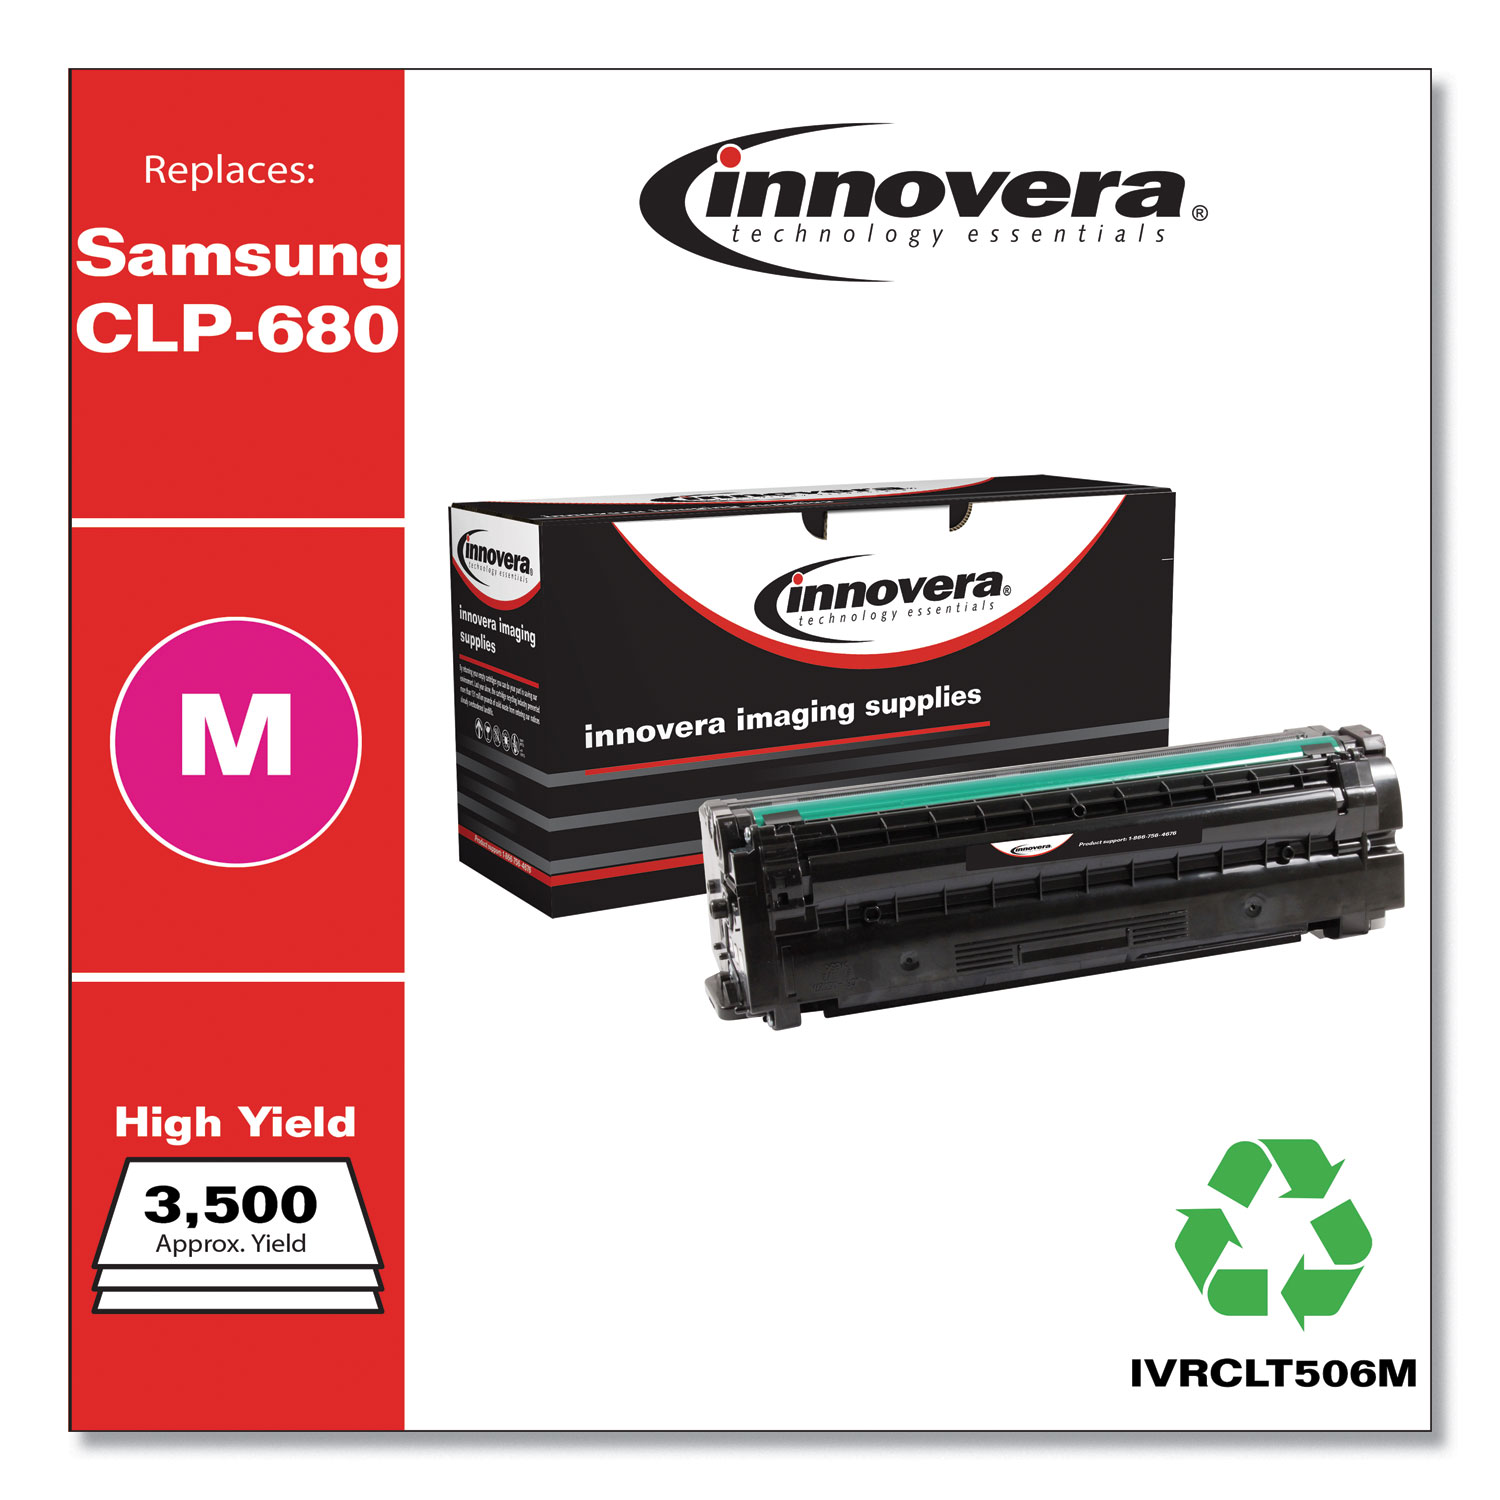 Remanufactured Magenta High-Yield Toner, Replacement for Samsung CLT-506 (CLT-M506L), 3,500 Page-Yield IVRCLT506M